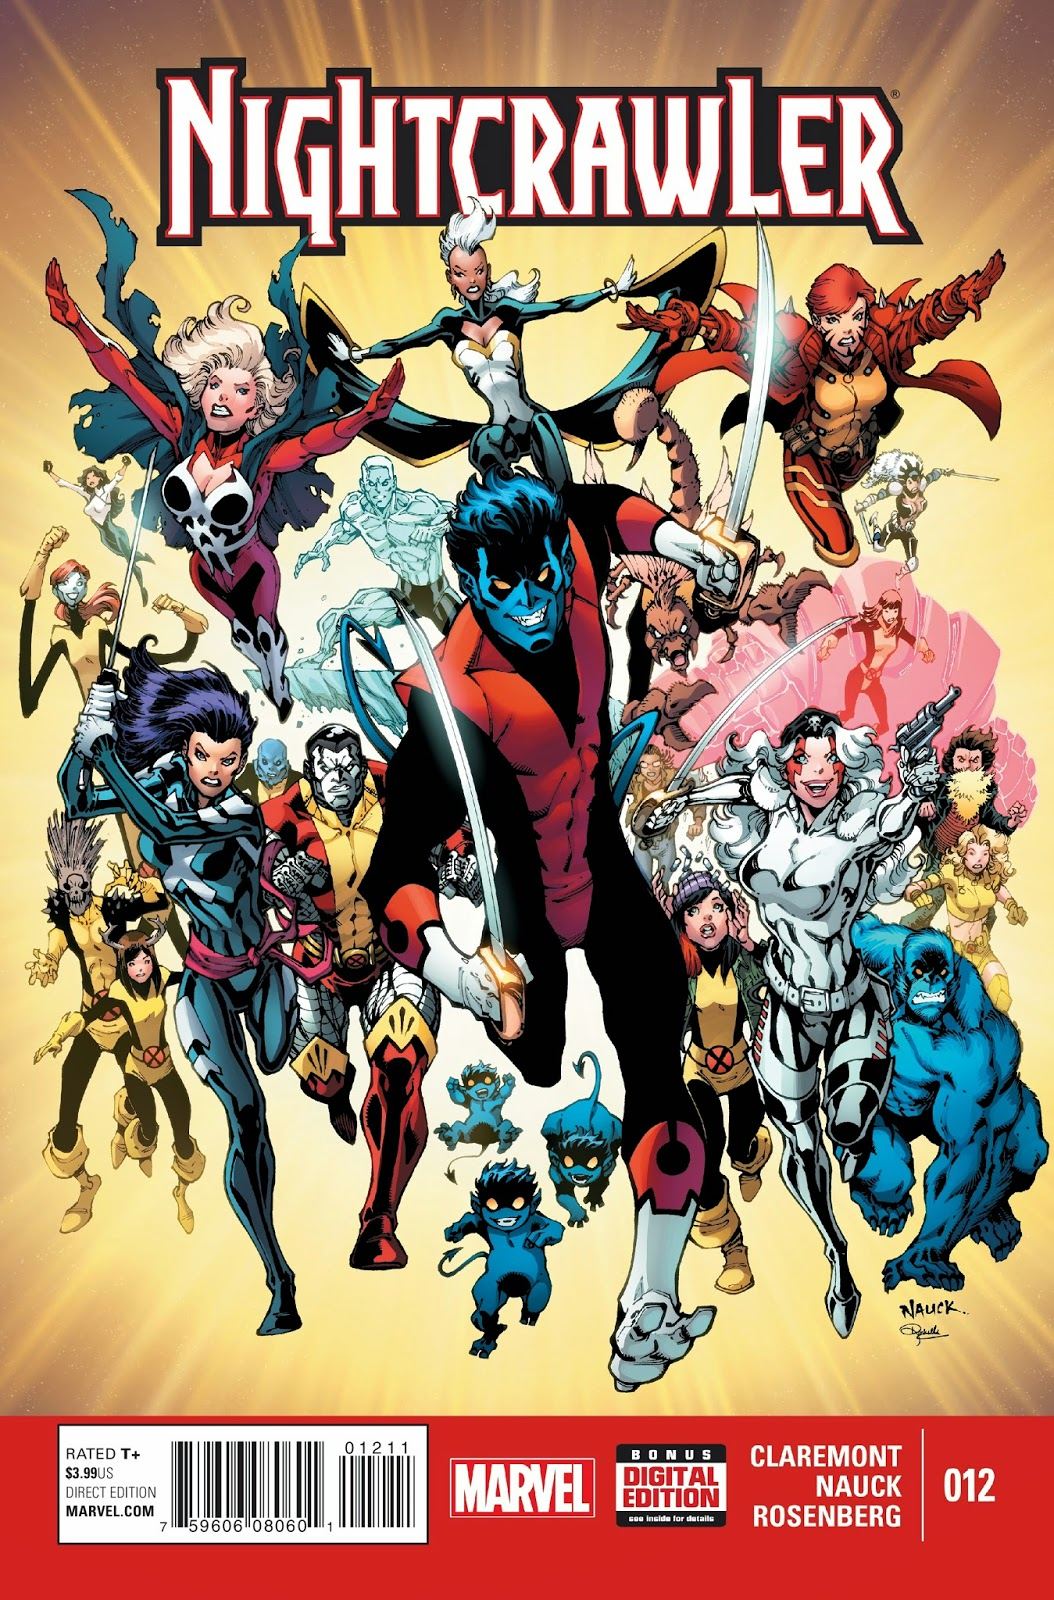 Nightcrawler's grand finale